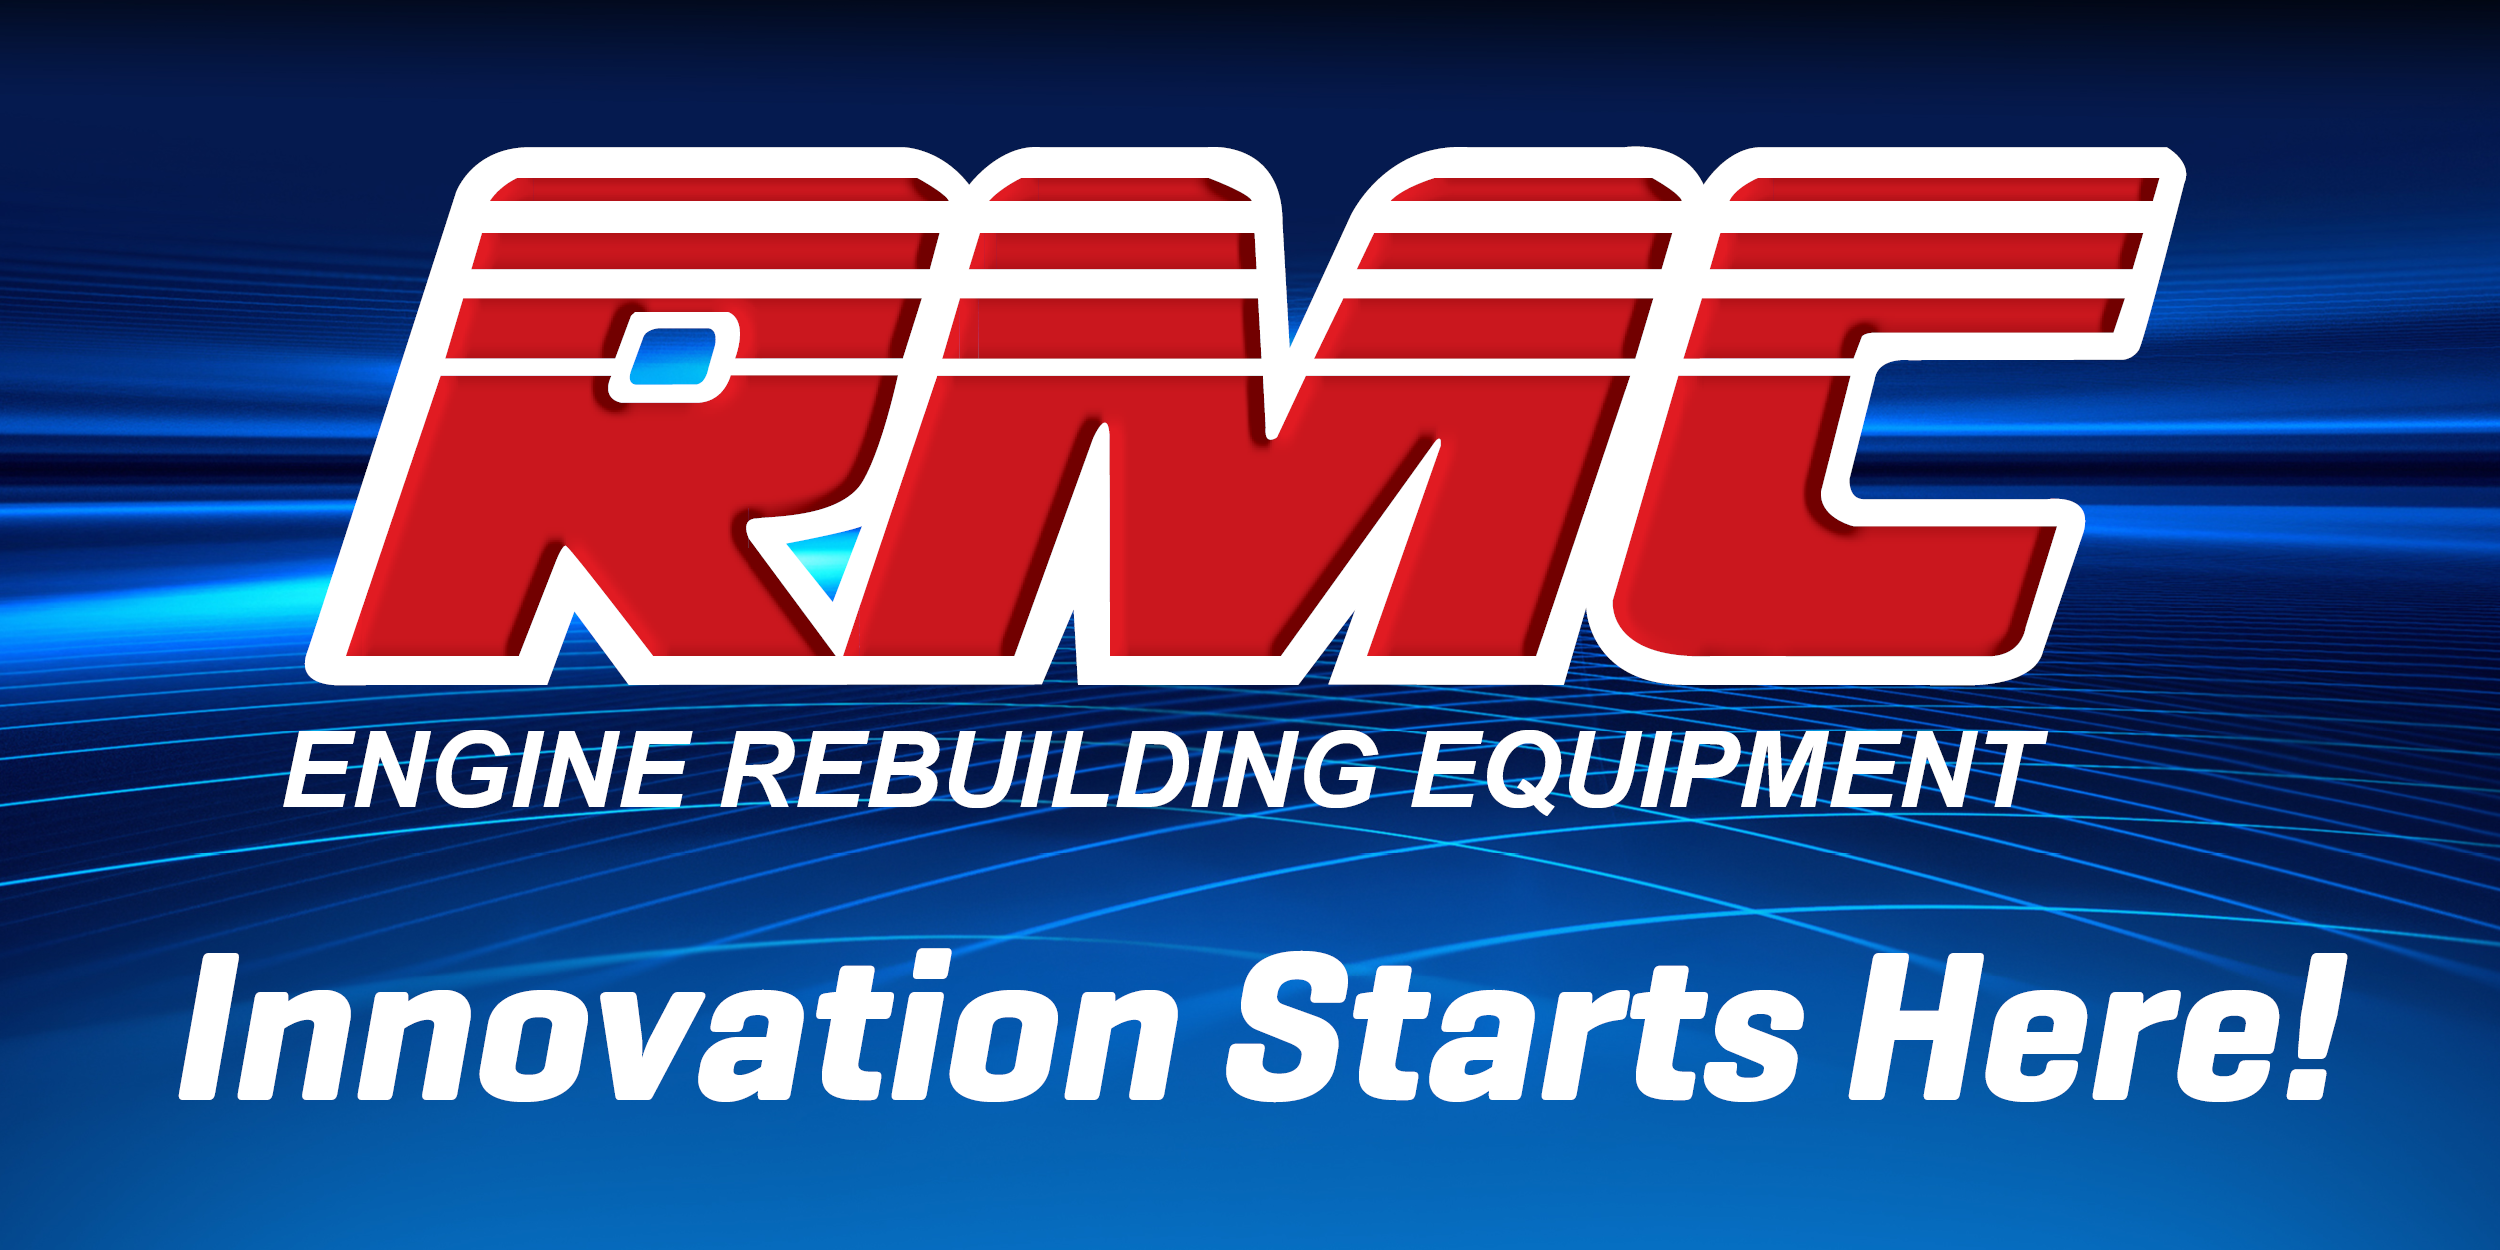 RMC Engine Rebuilding Equipment Inc.